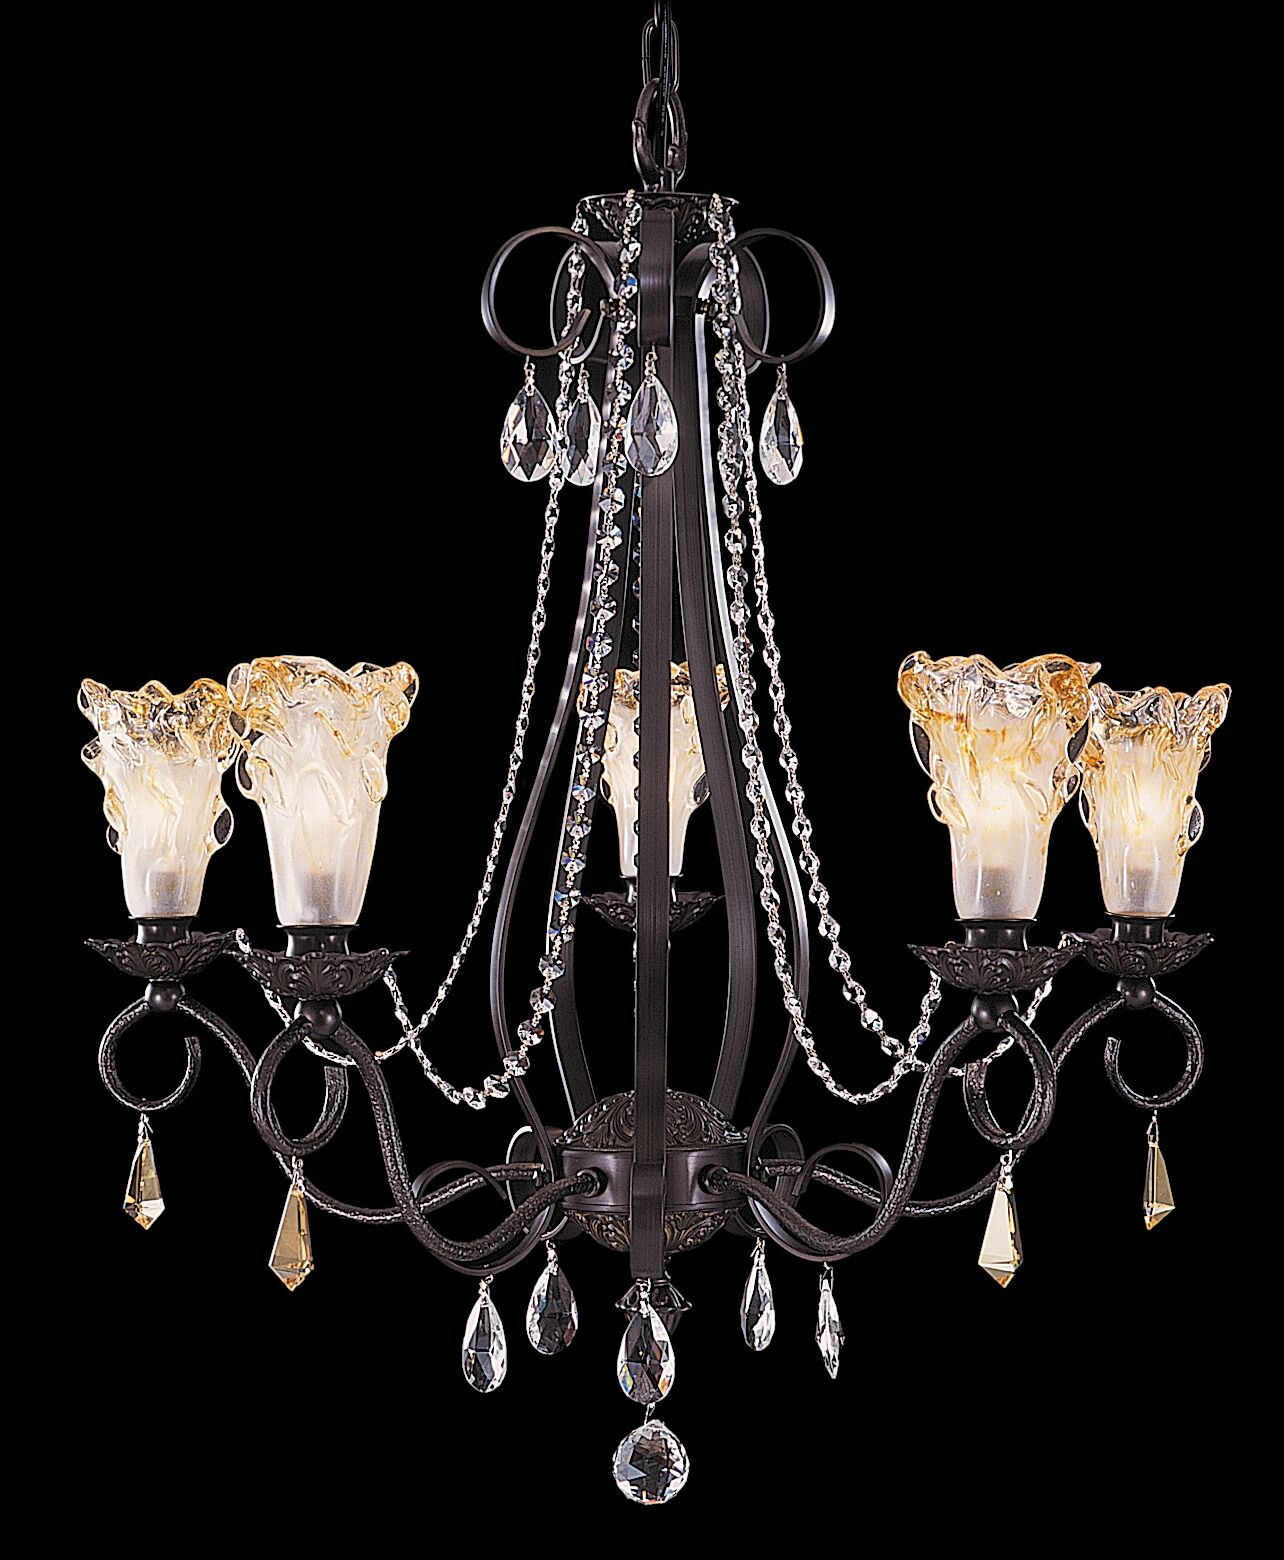 Rhapsody 5-Light Shaded Chandelier